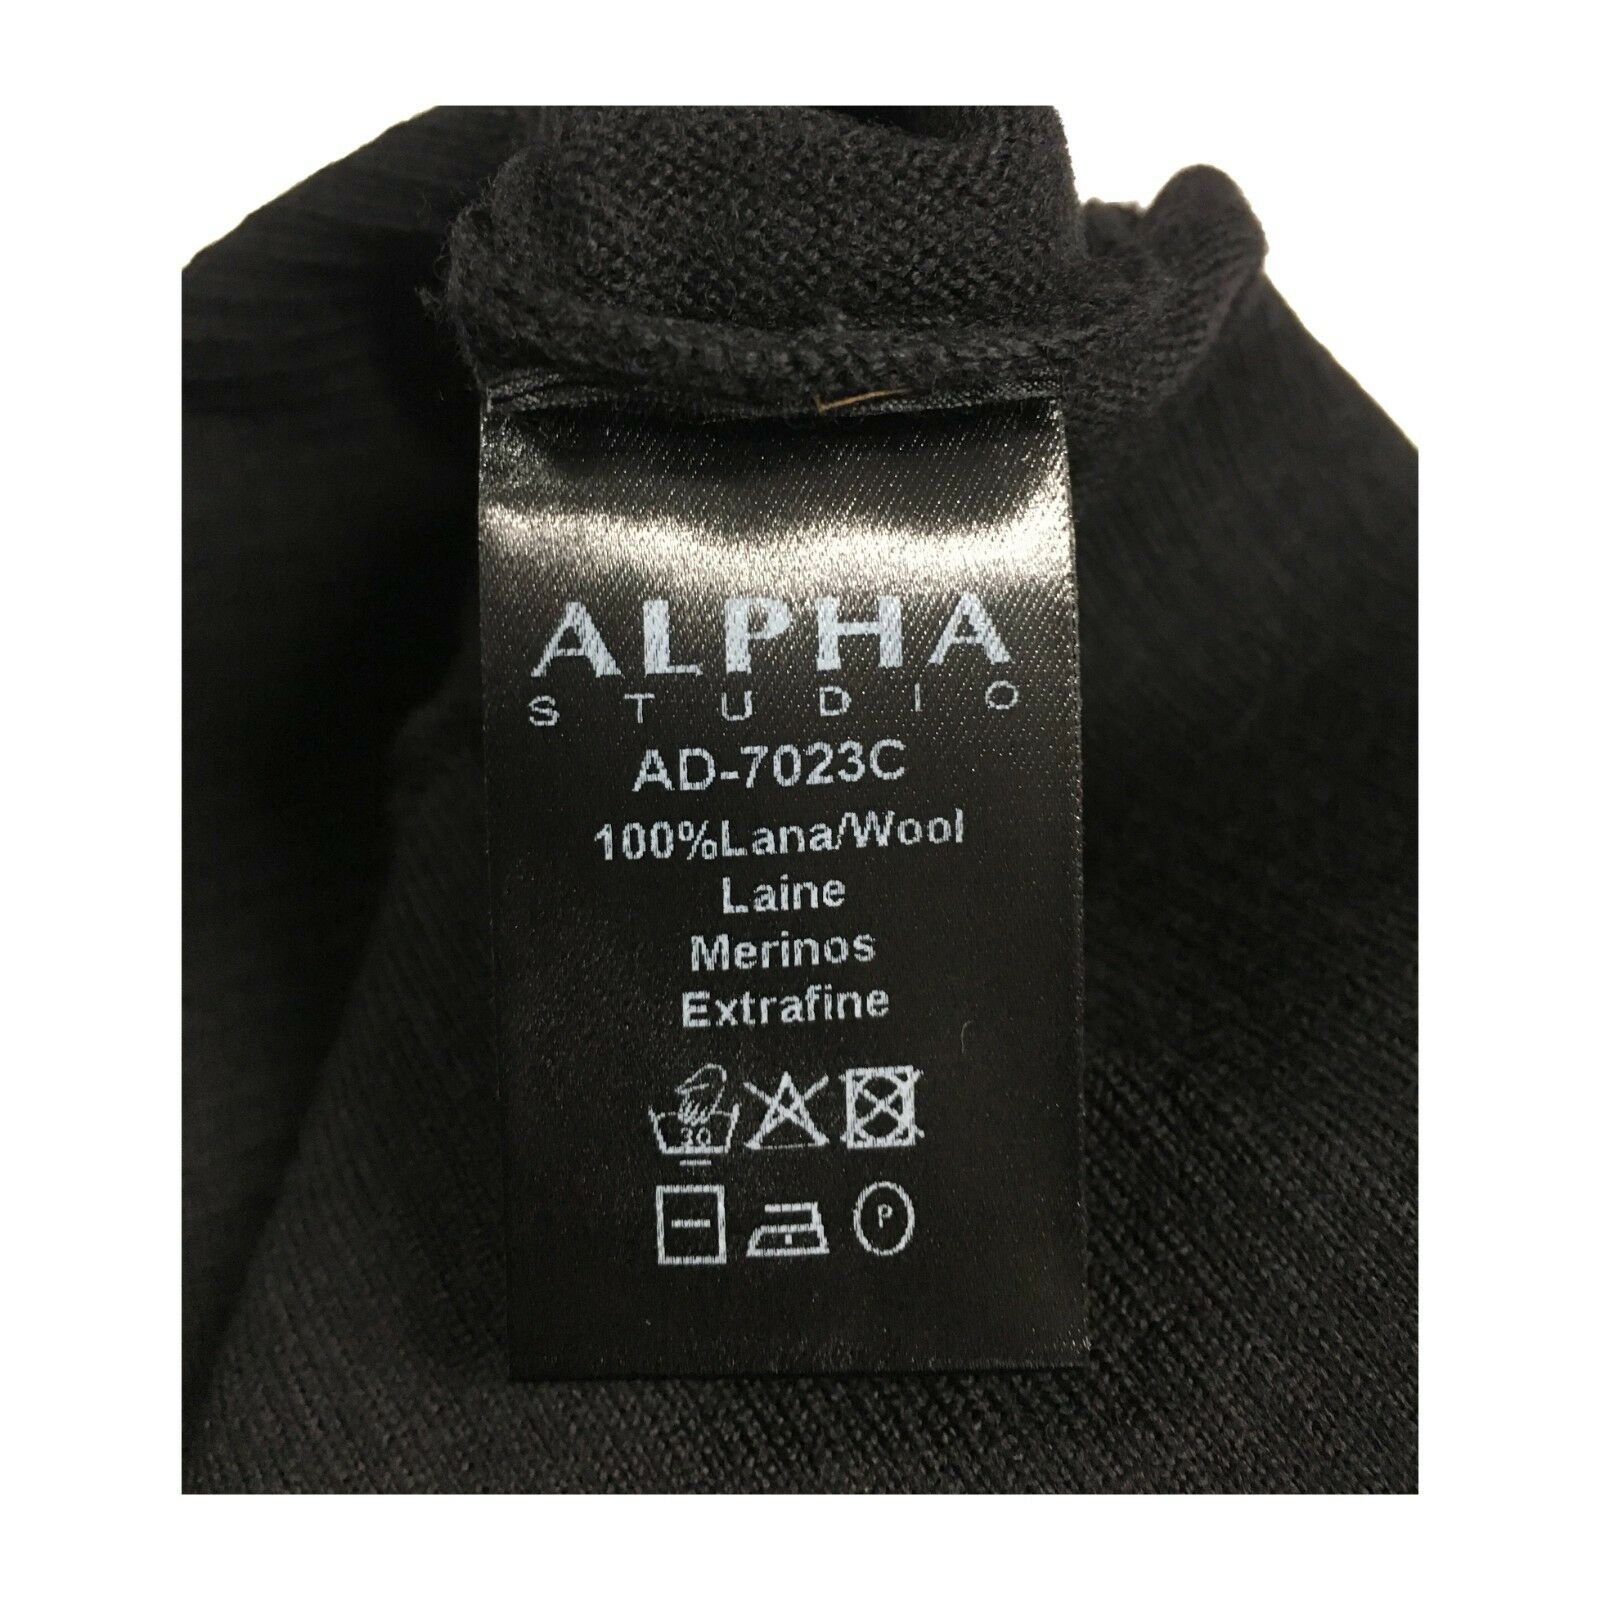 ALPHA STUDIO maglia damen girocollo over 100% manica costine mod AD-7023C 100% over lana 9d32d9